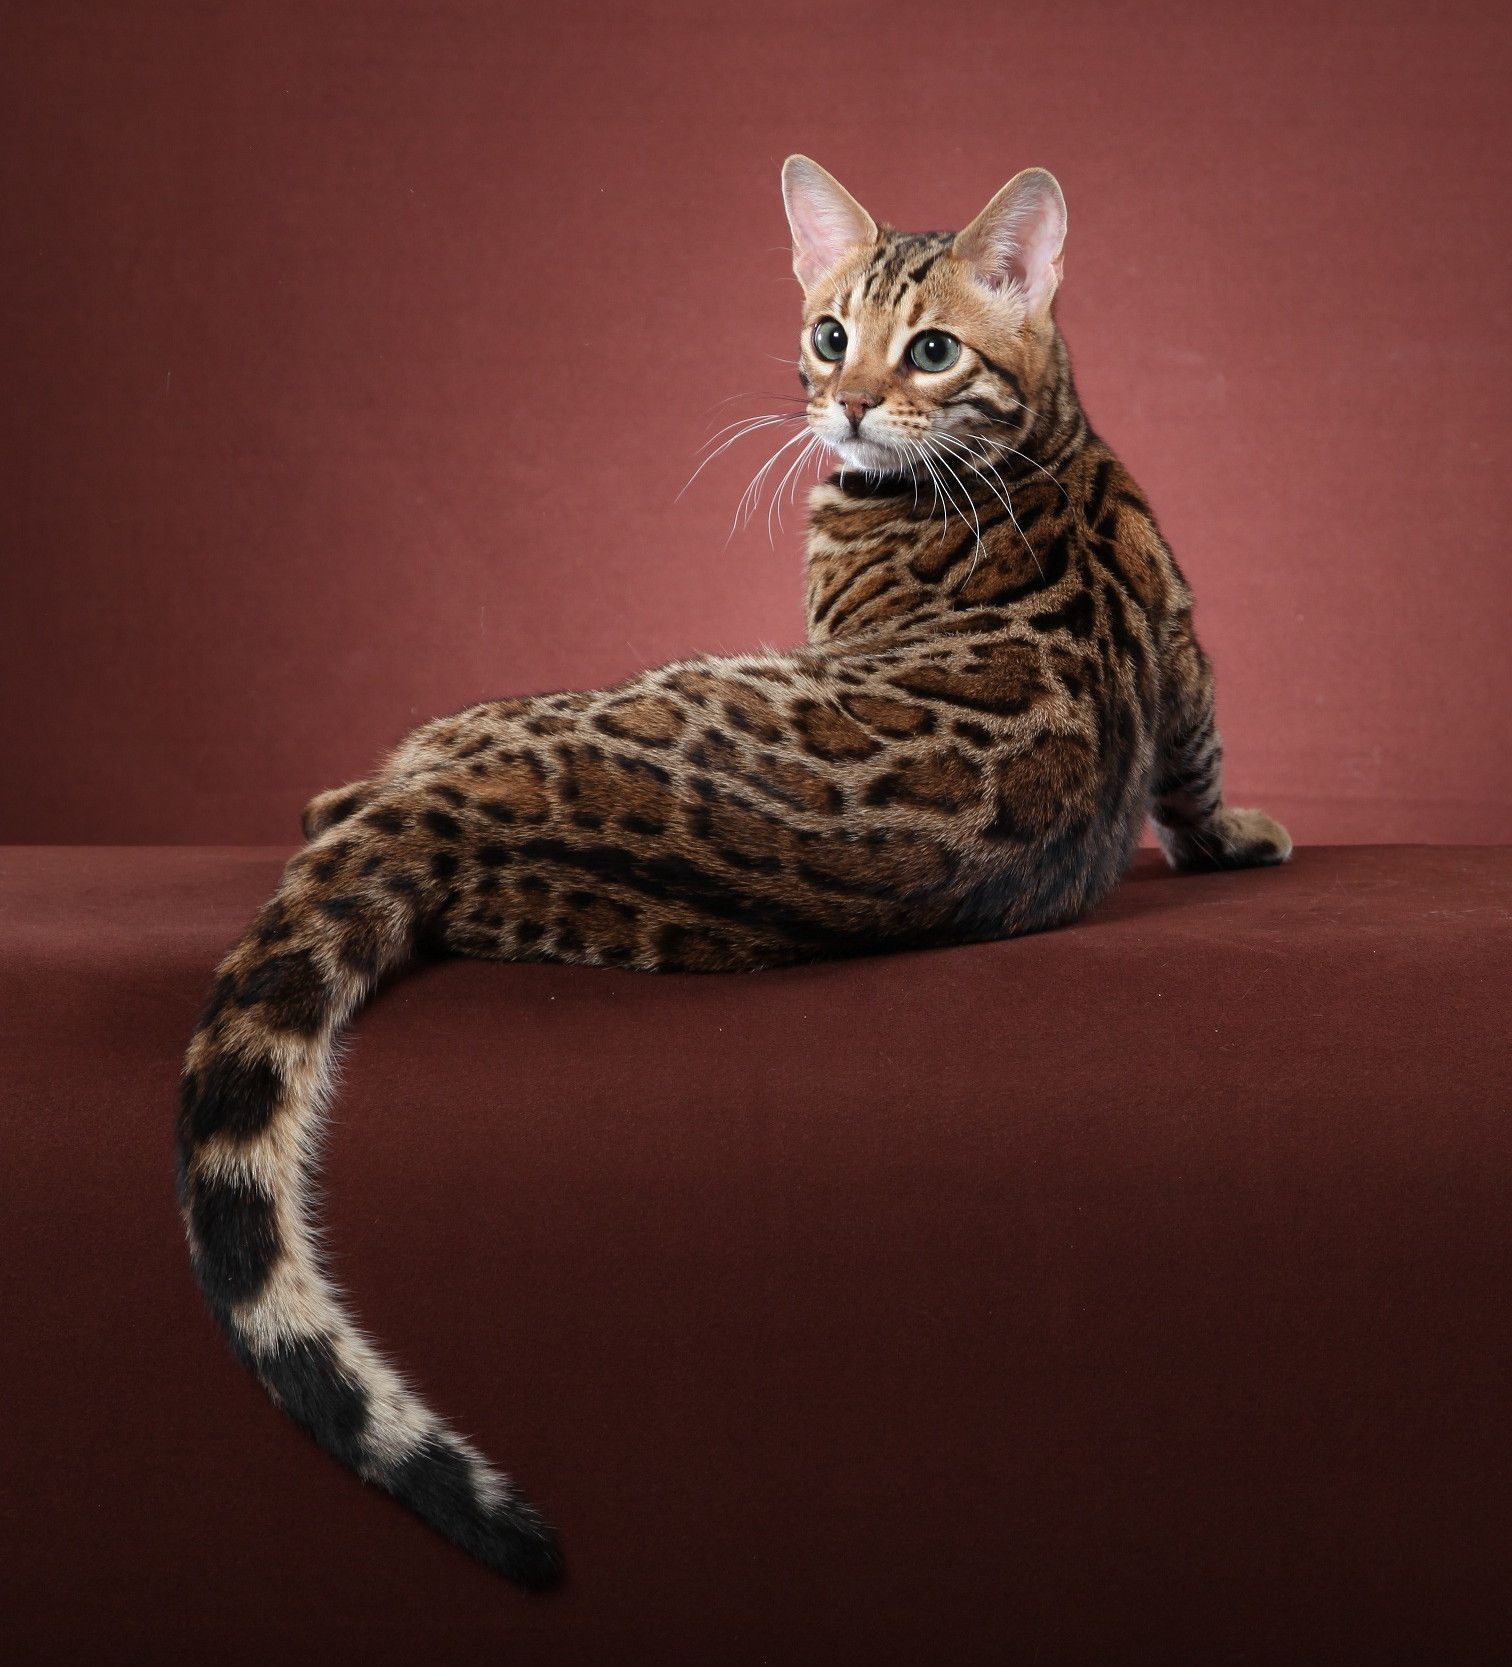 Pin by Dawnee Anaya on cats Bengal cat for sale, Bengal